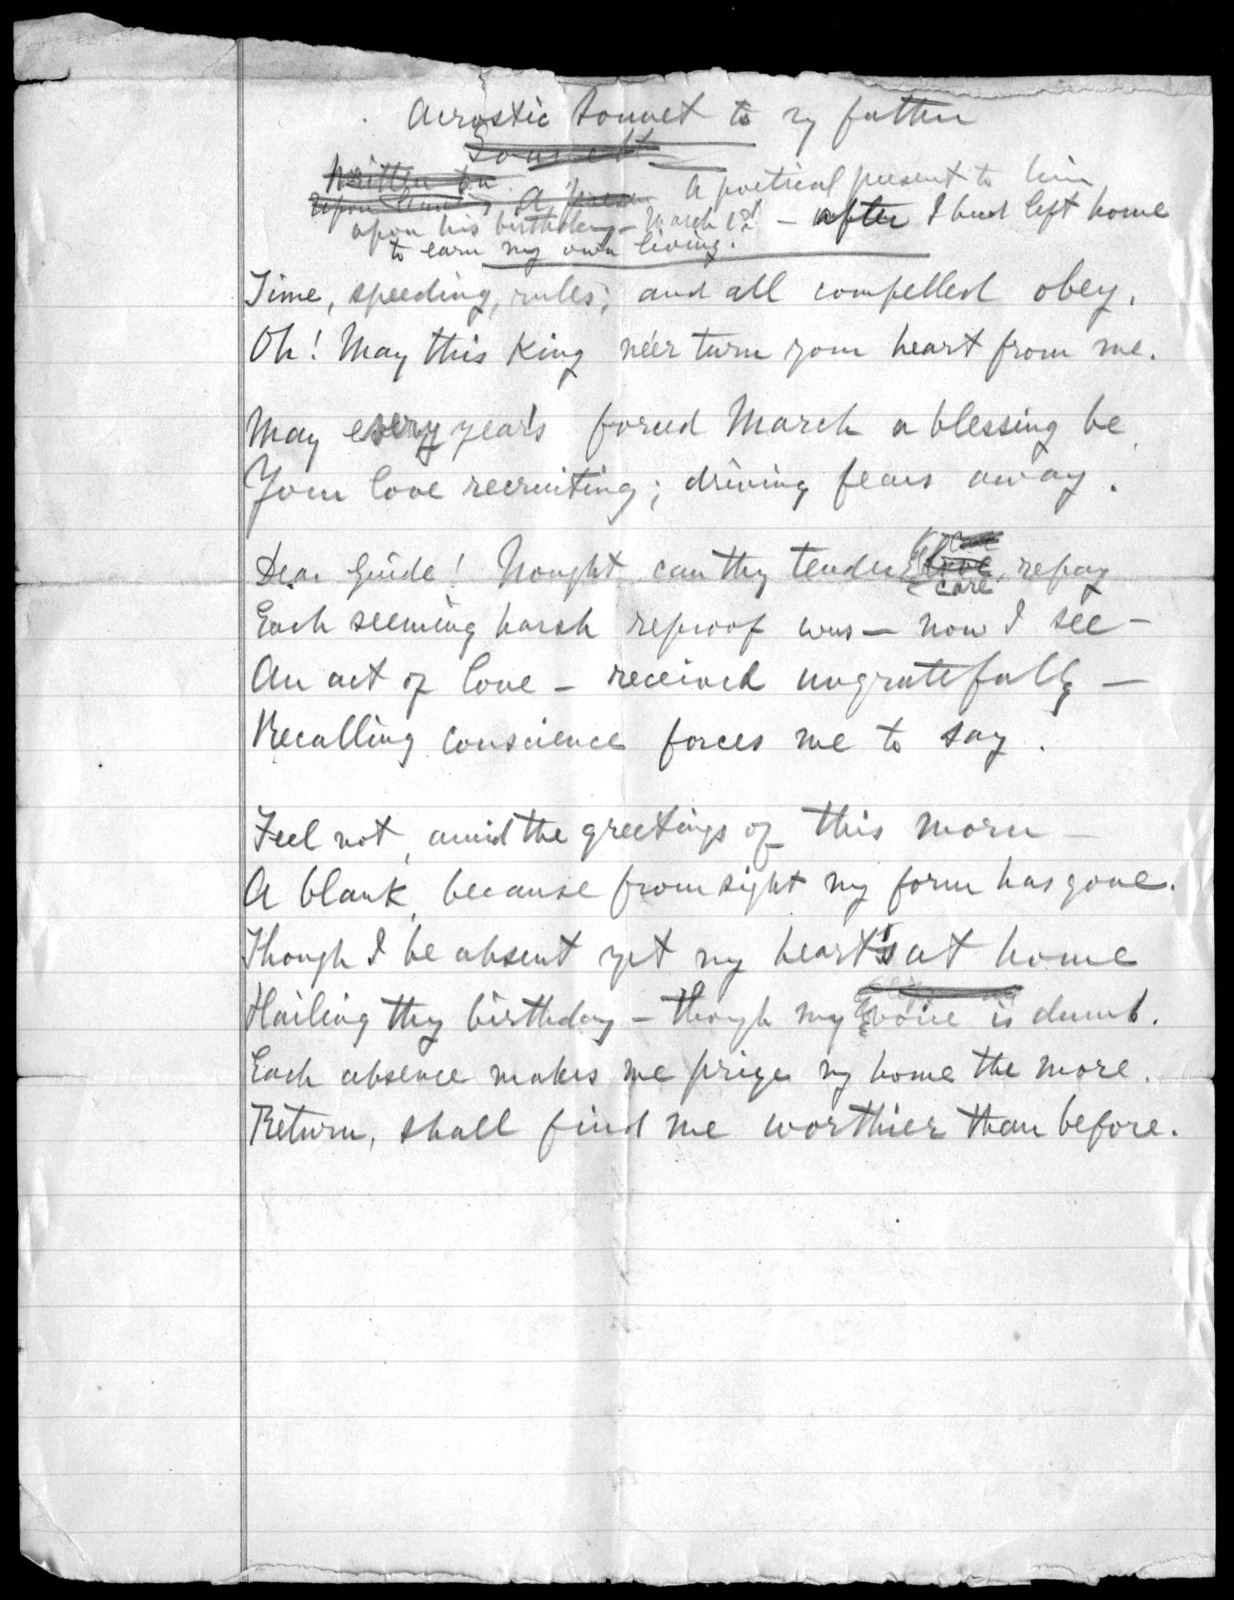 Poem by alexander graham bell march 1 1864 picryl poem by alexander graham bell march 1 1864 m4hsunfo